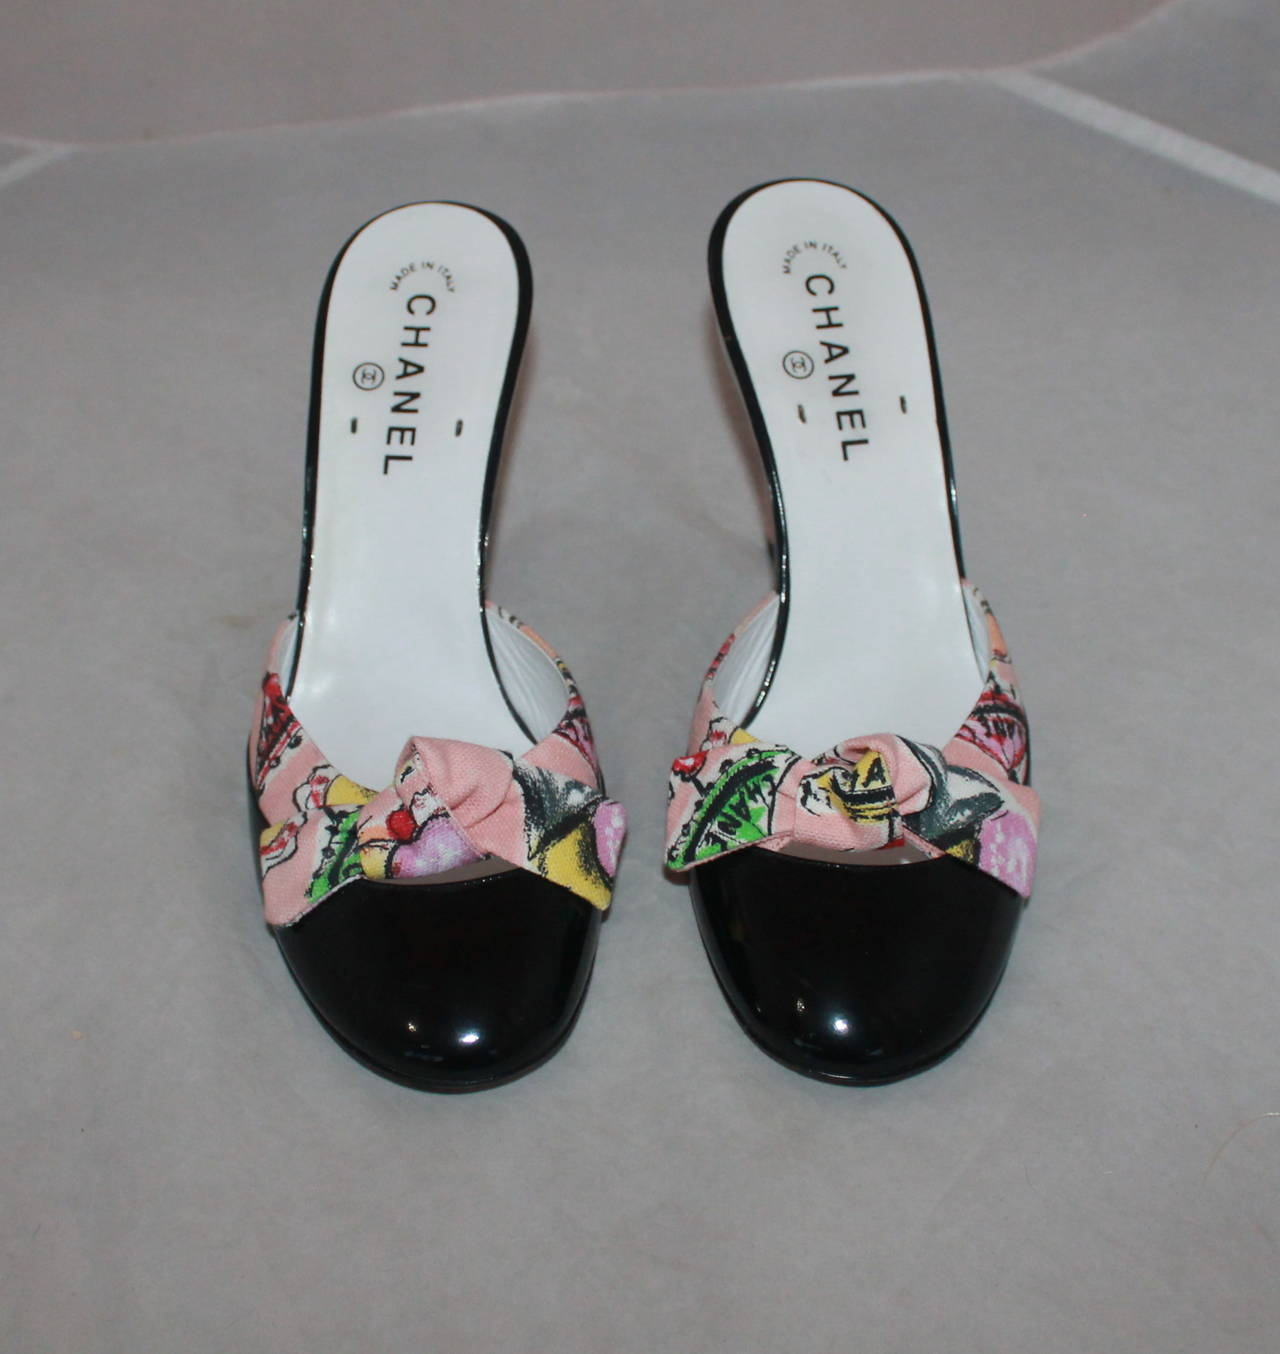 Chanel Fabric Beach Print & Black Patent Heel with Bow - 40 4